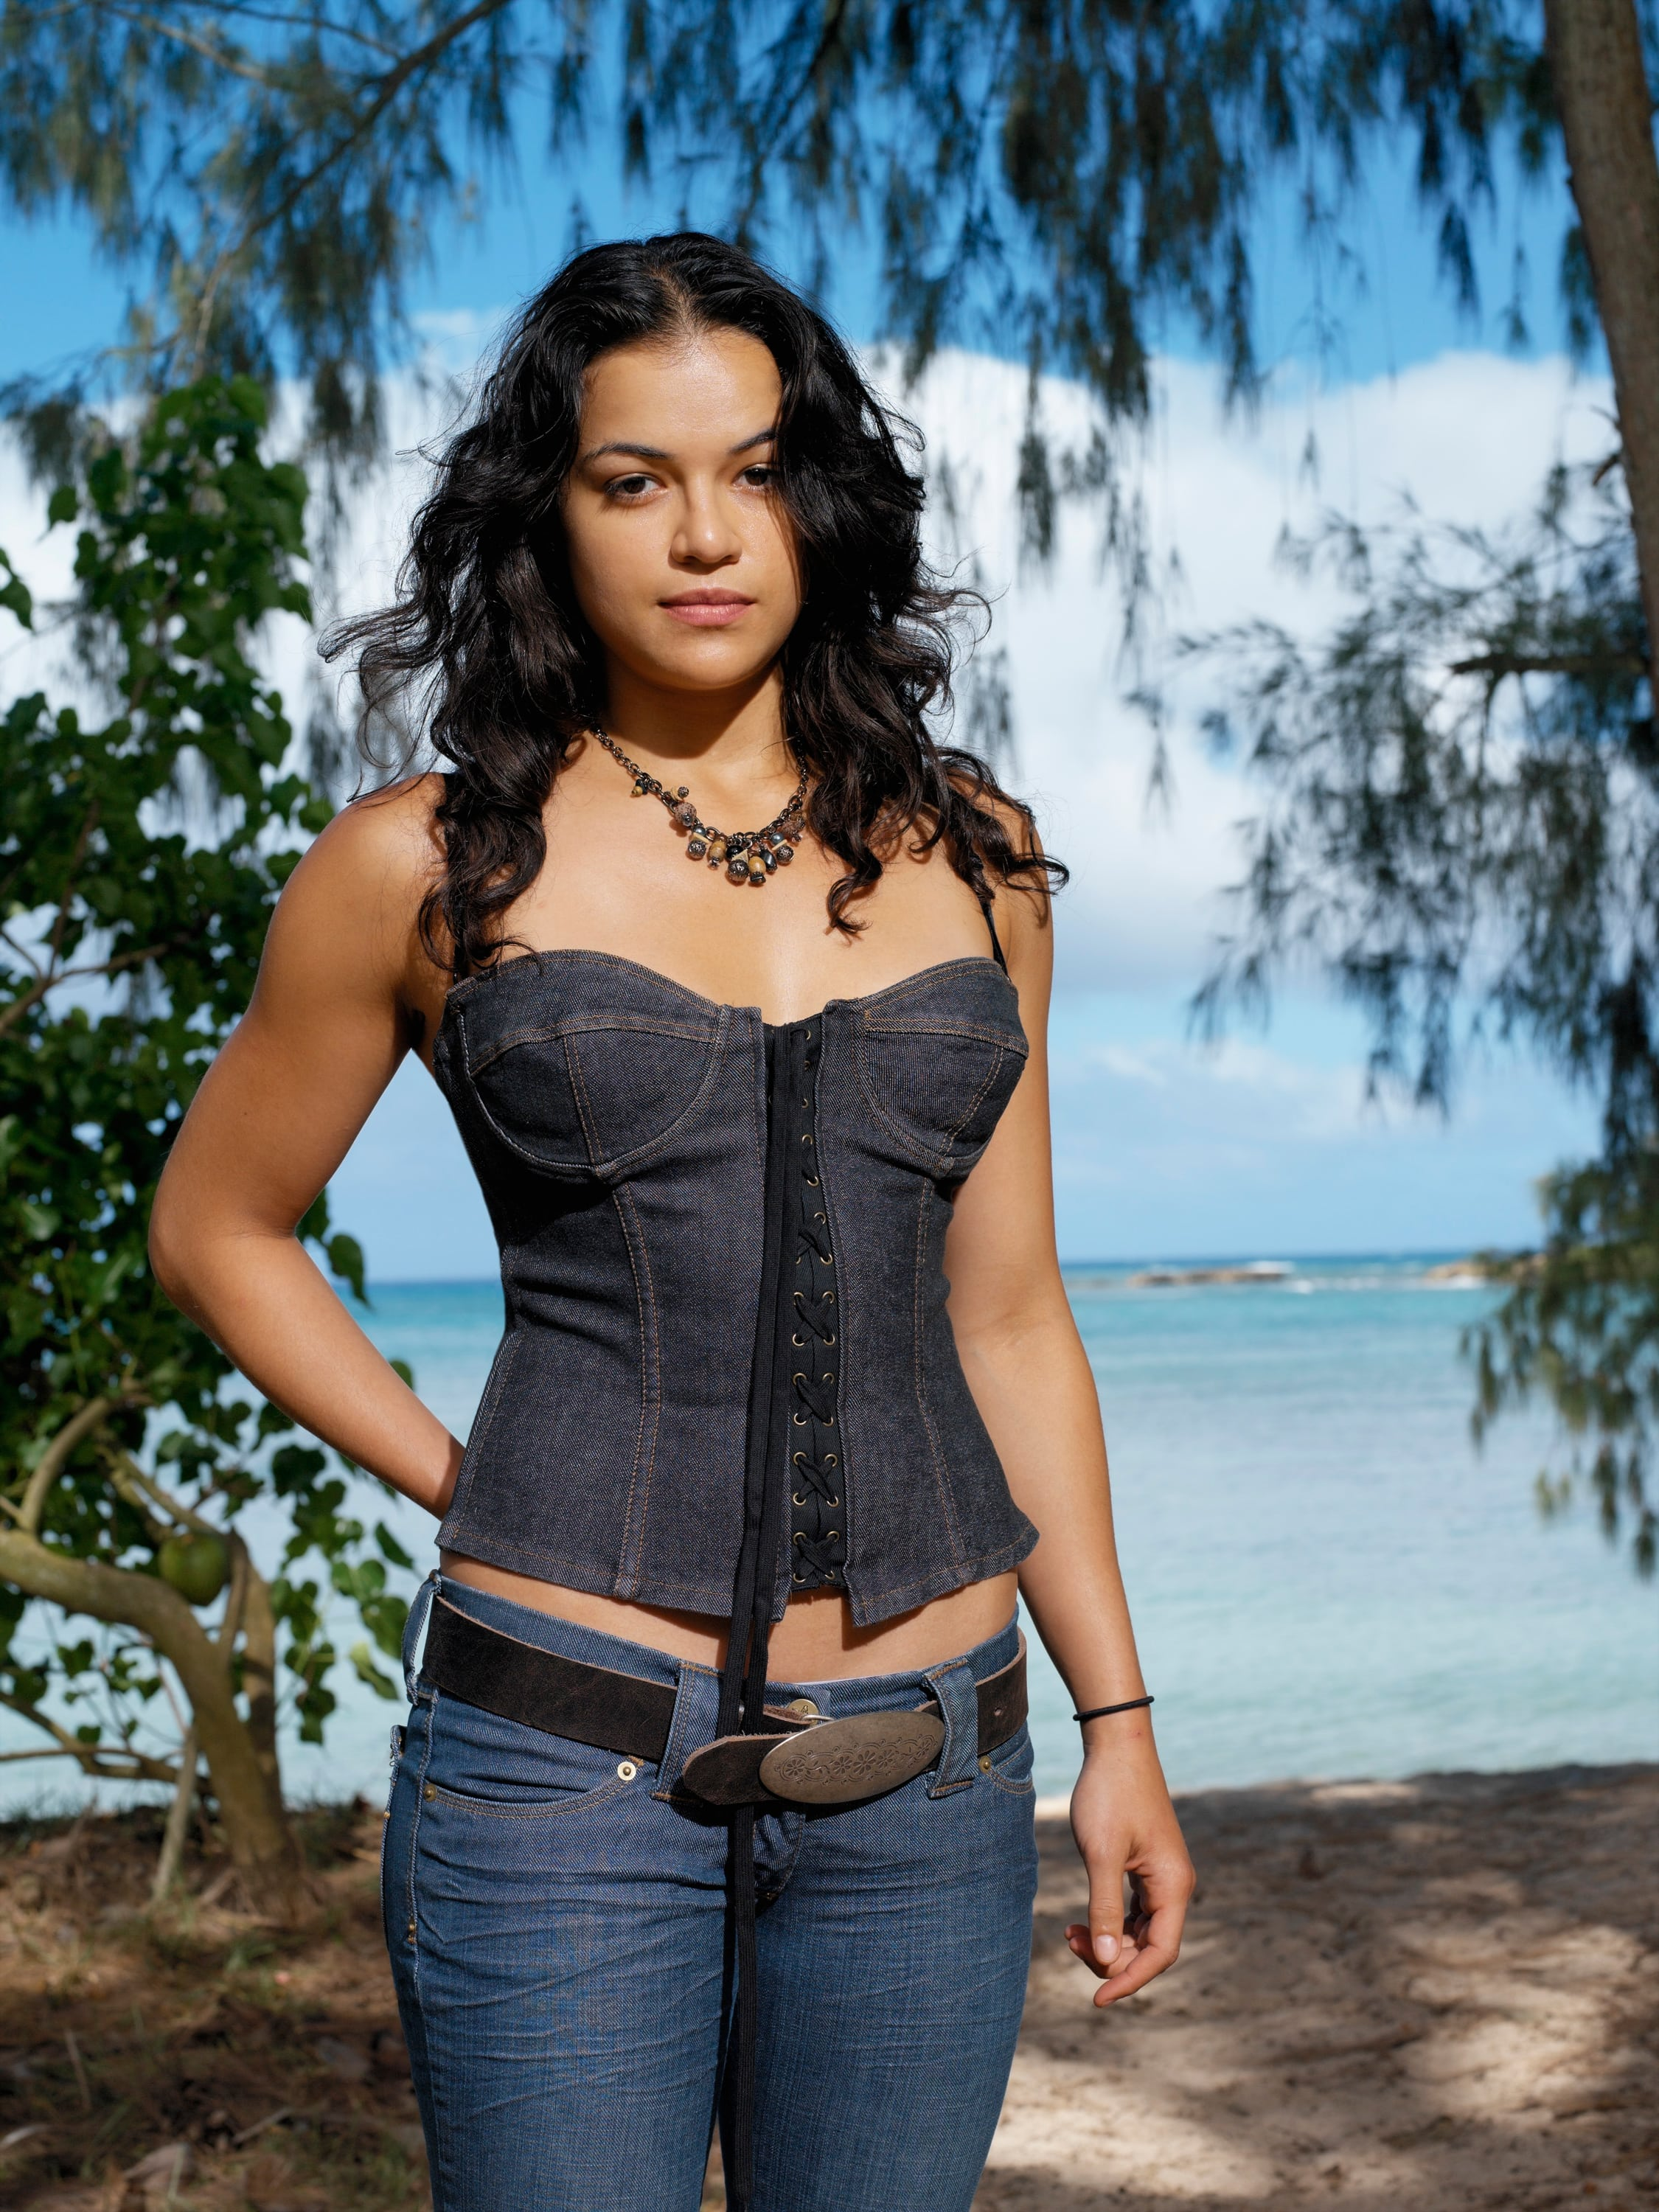 Michelle Rodriguez Background